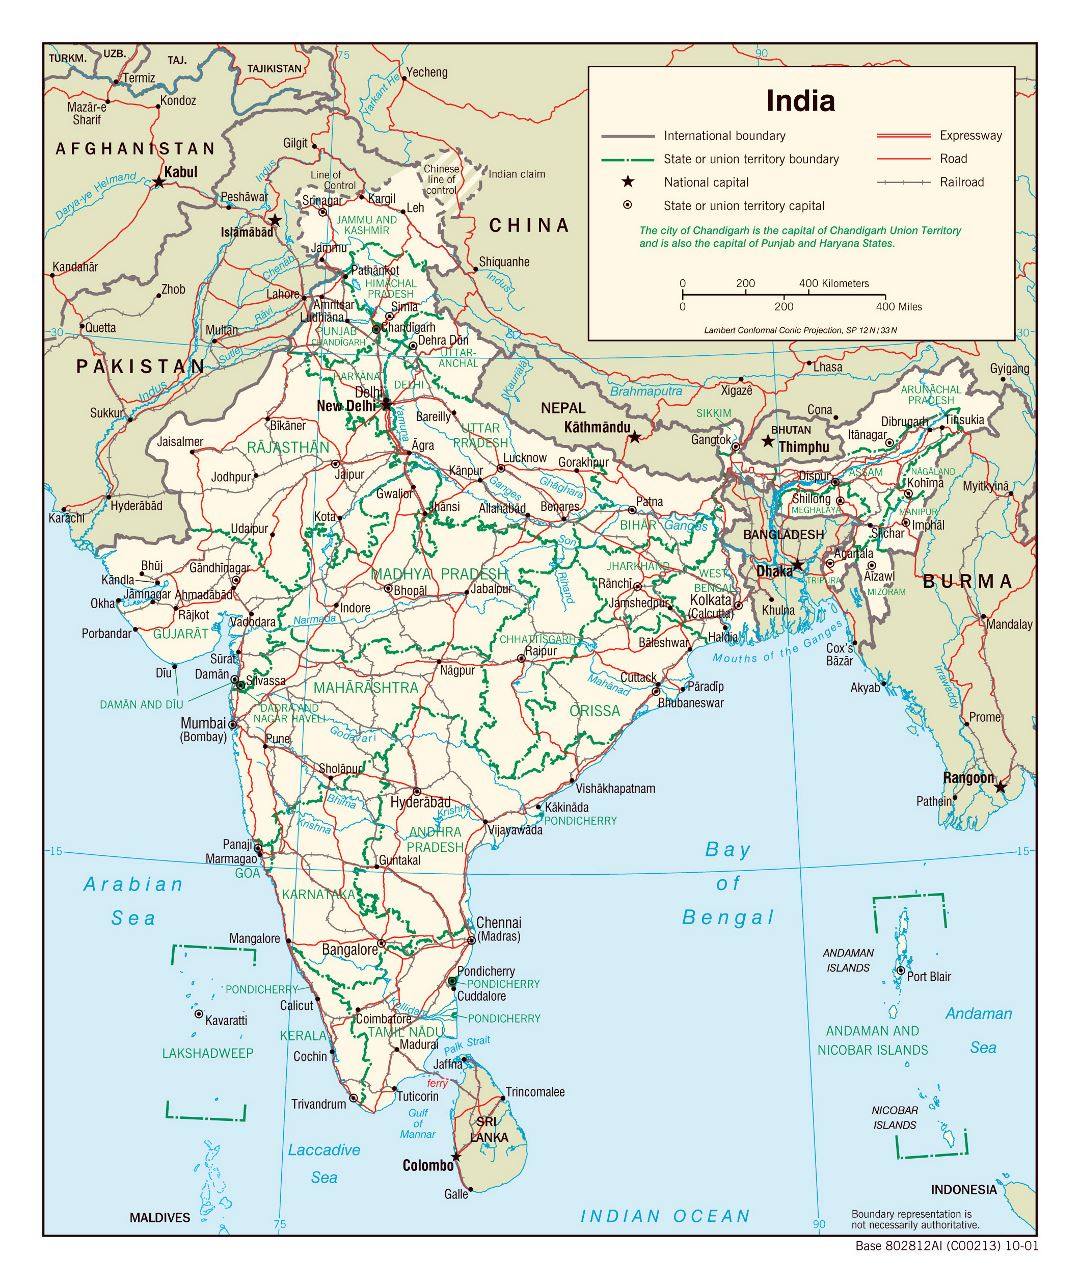 Large detailed political and administrative map of India with roads, railroads and major cities - 2001